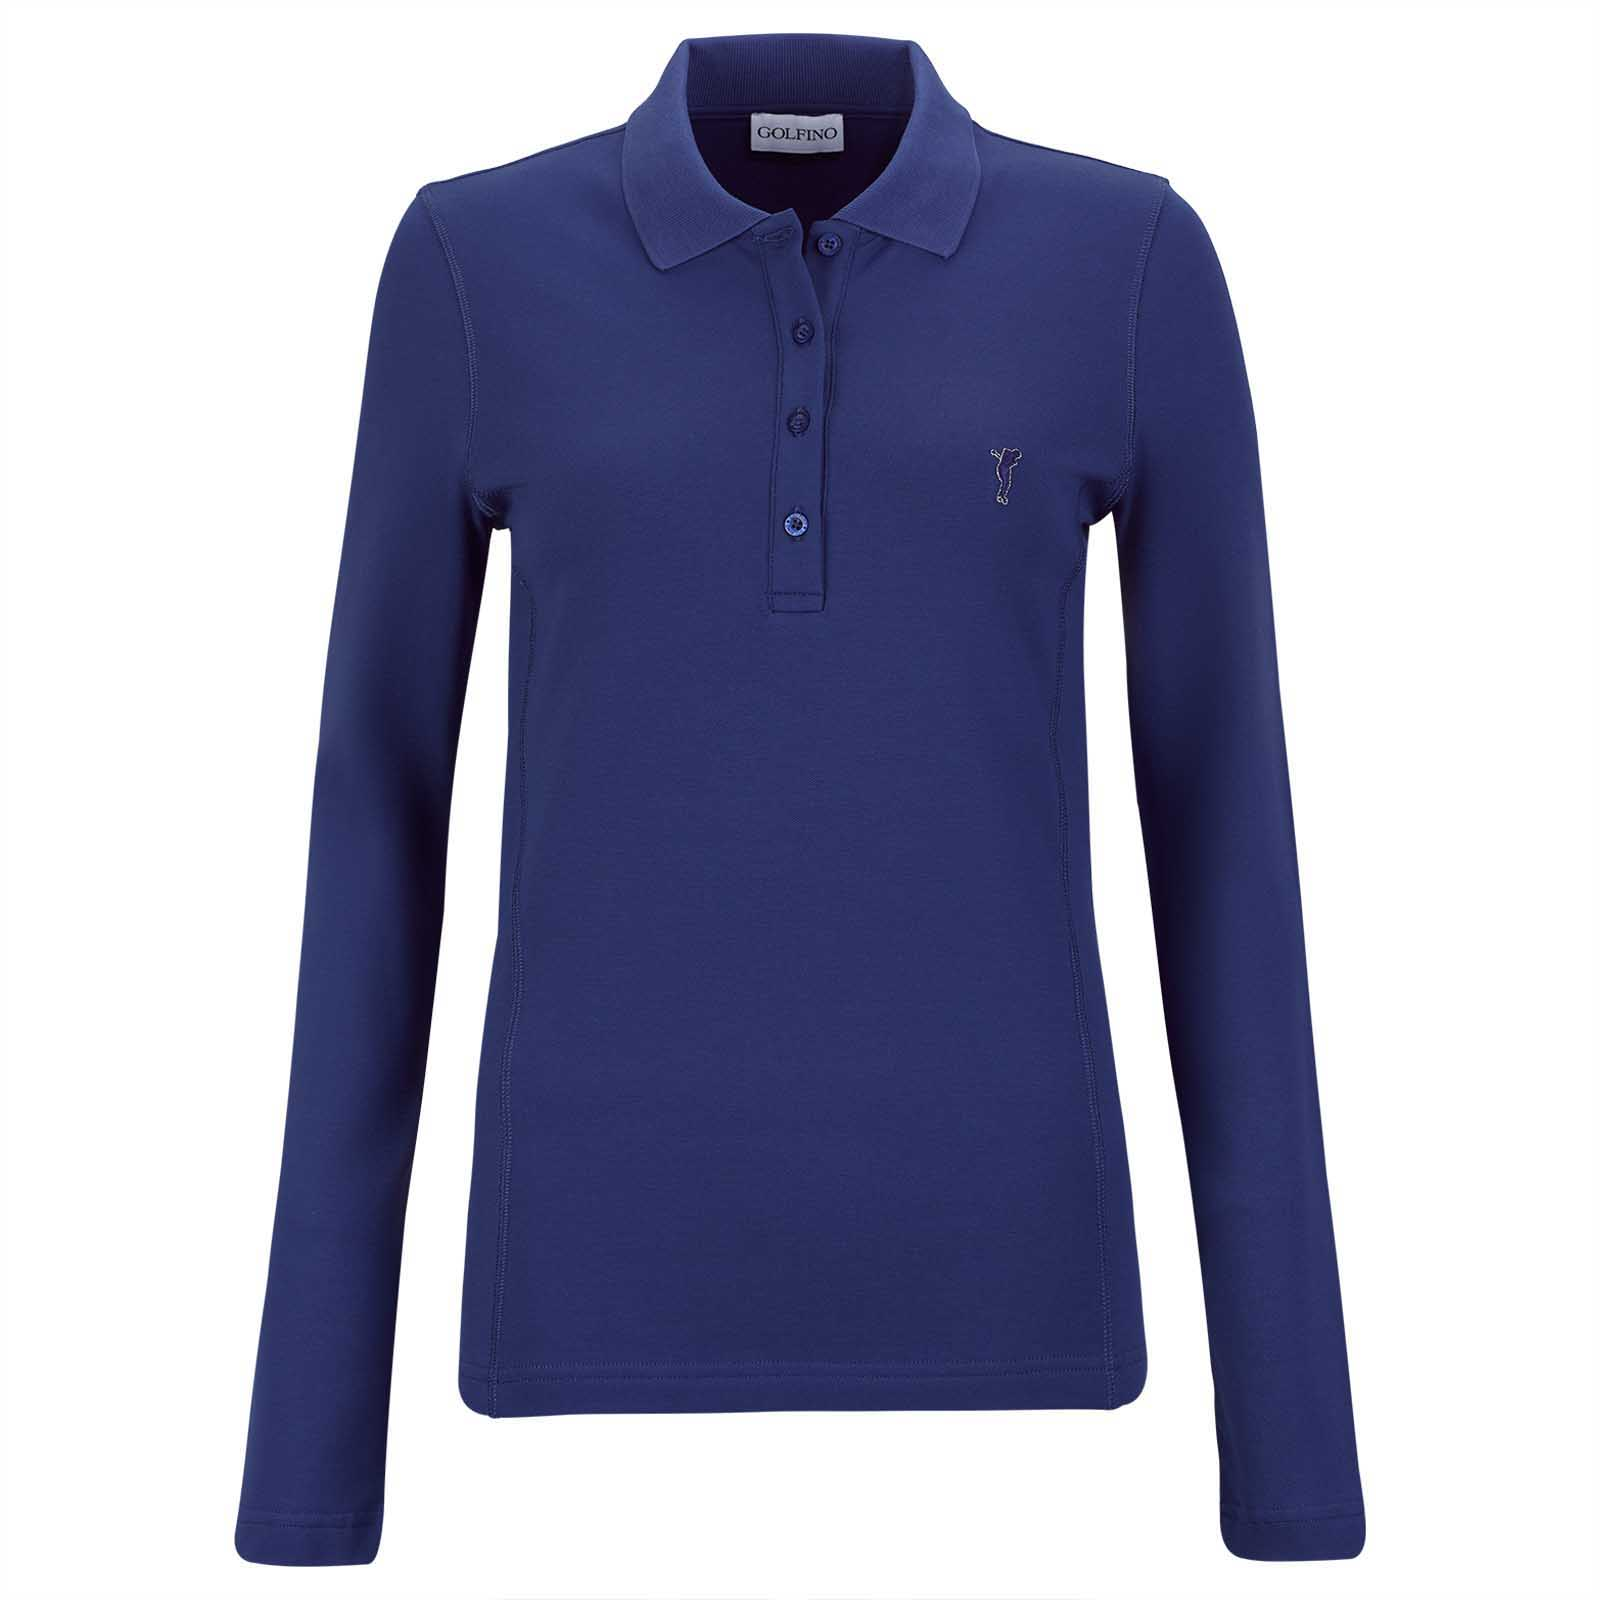 Warming long-sleeve ladies' golf polo with Sun and Cold Protection in slim fit